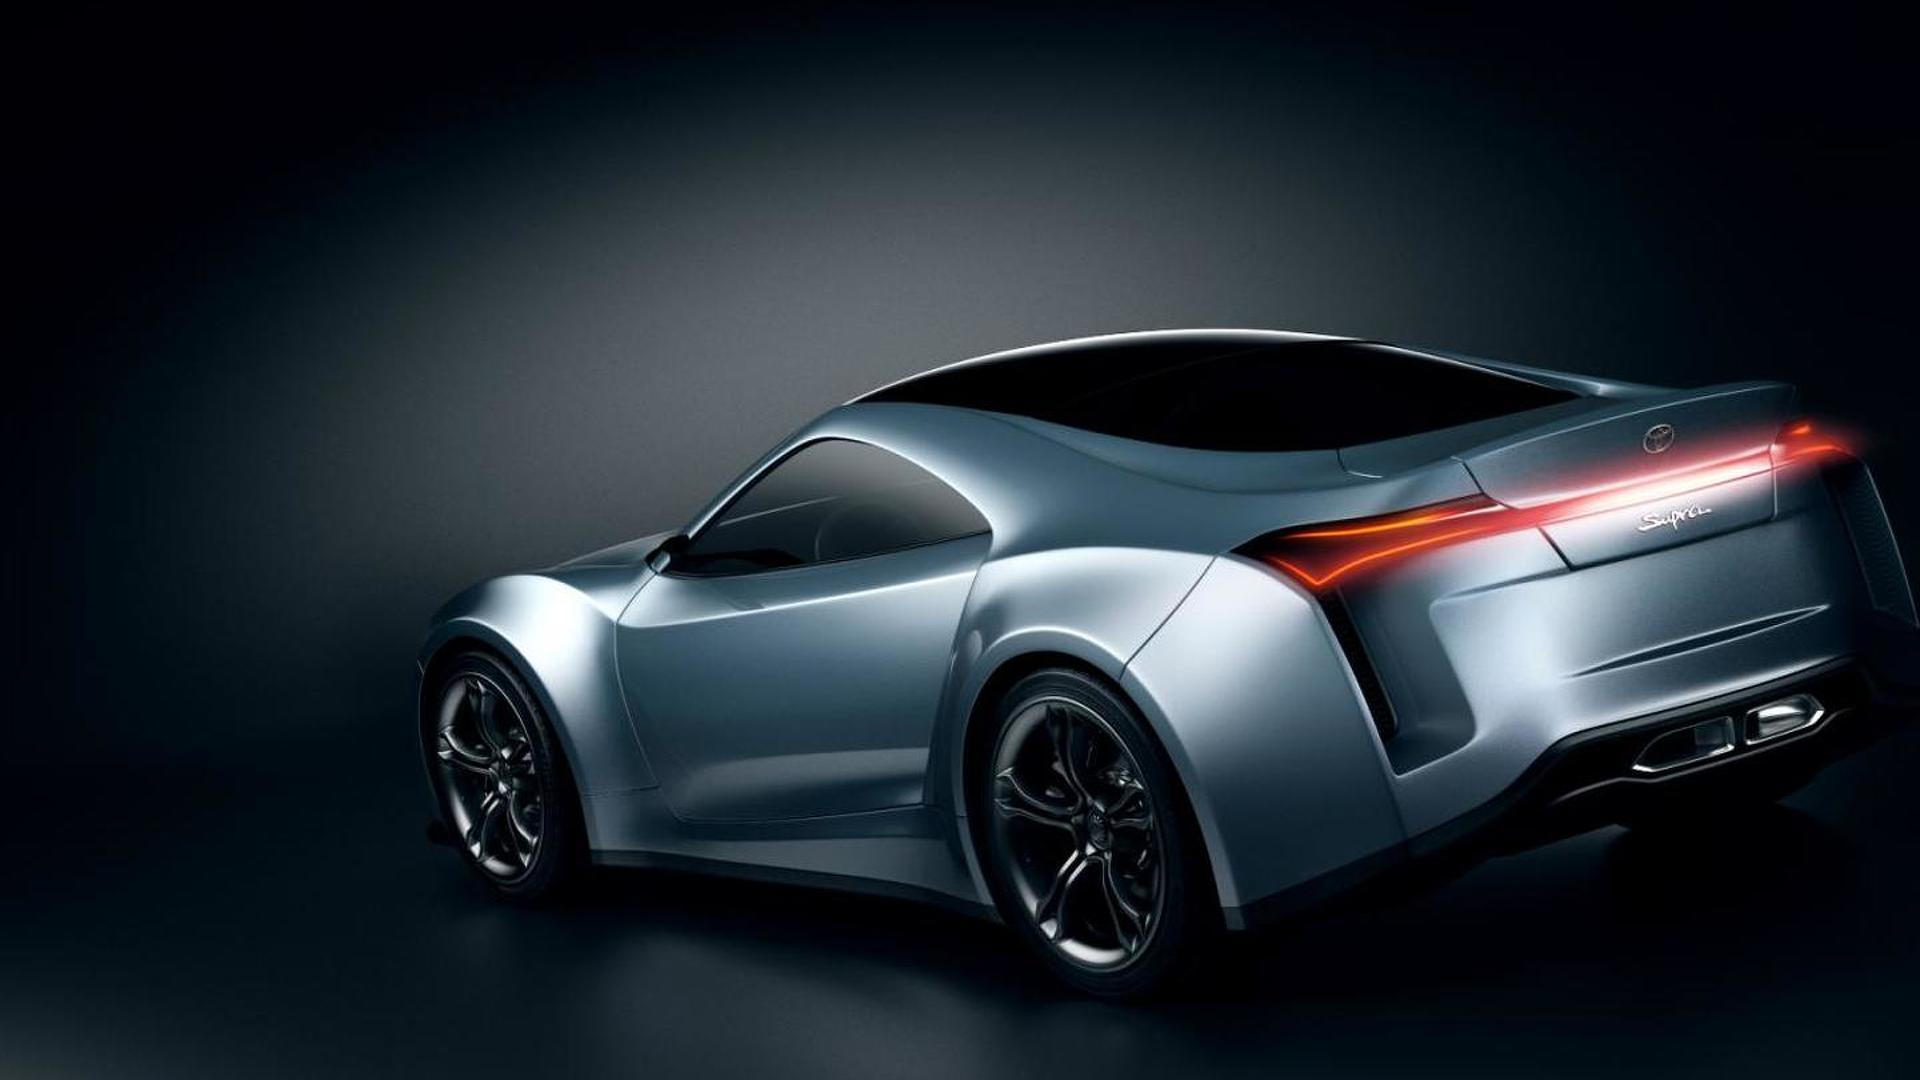 Toyota Supra successor to have a mid-mounted, hybridized 3.5-liter V6 - report